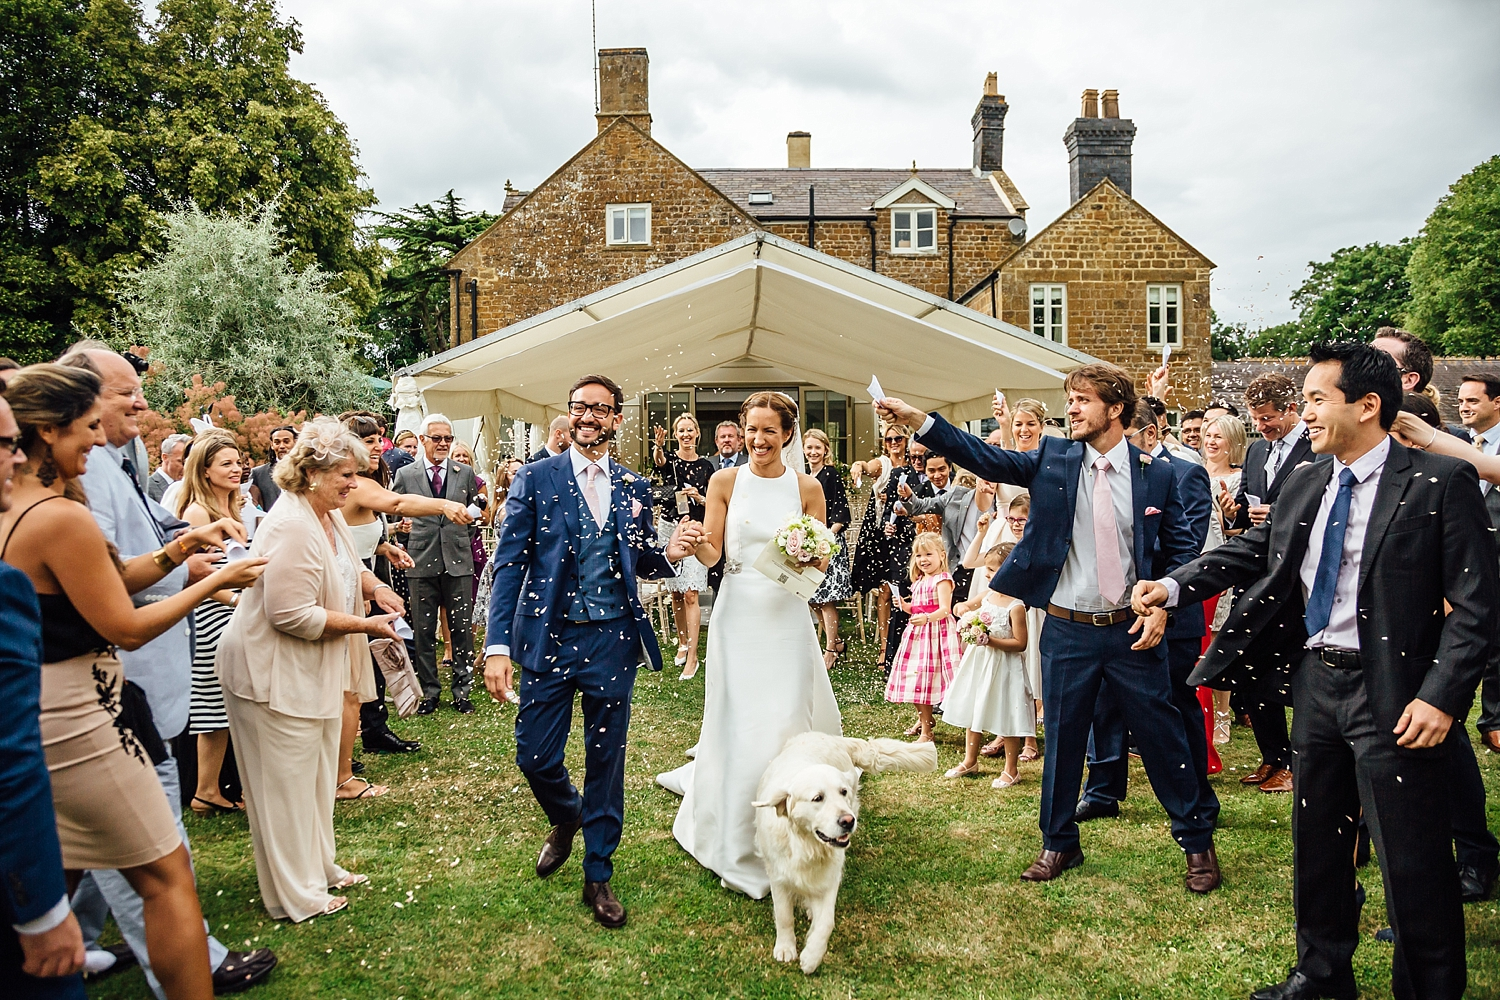 alexvictor-blog-natural-fun-relaxed-documentary-charlotte-jopling-wedding-photography-northamptonshire-home-garden-country-summer-32.jpg